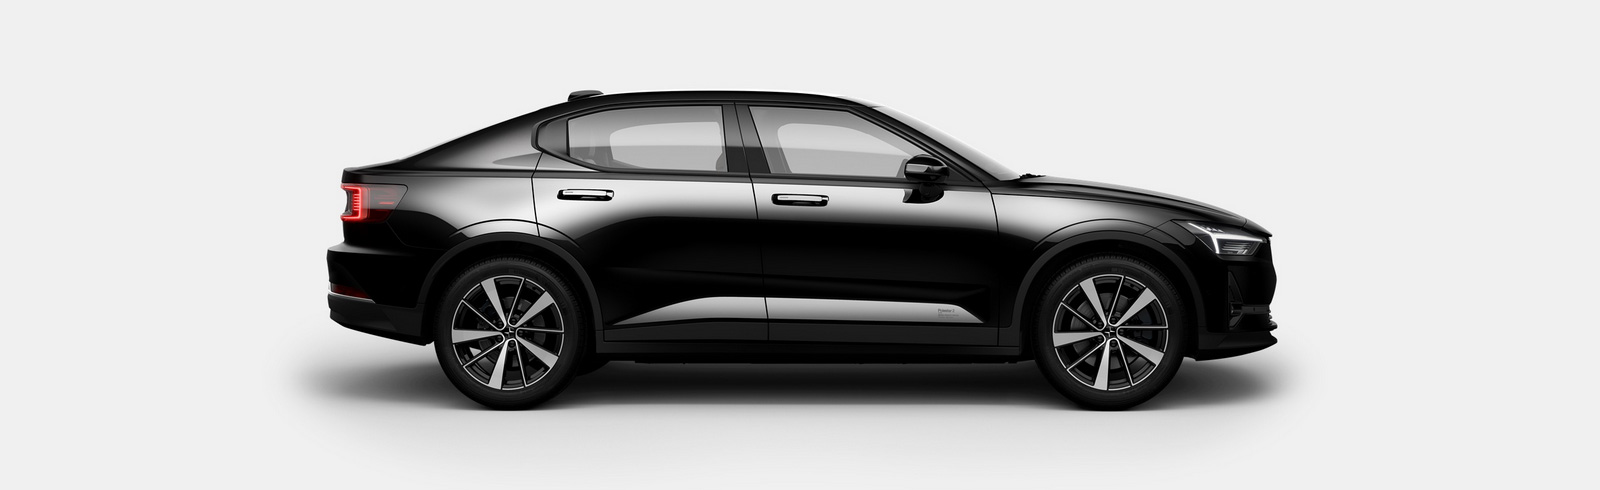 Polestar 2 configurator is now live with vehicle pricing starting at USD 59,900